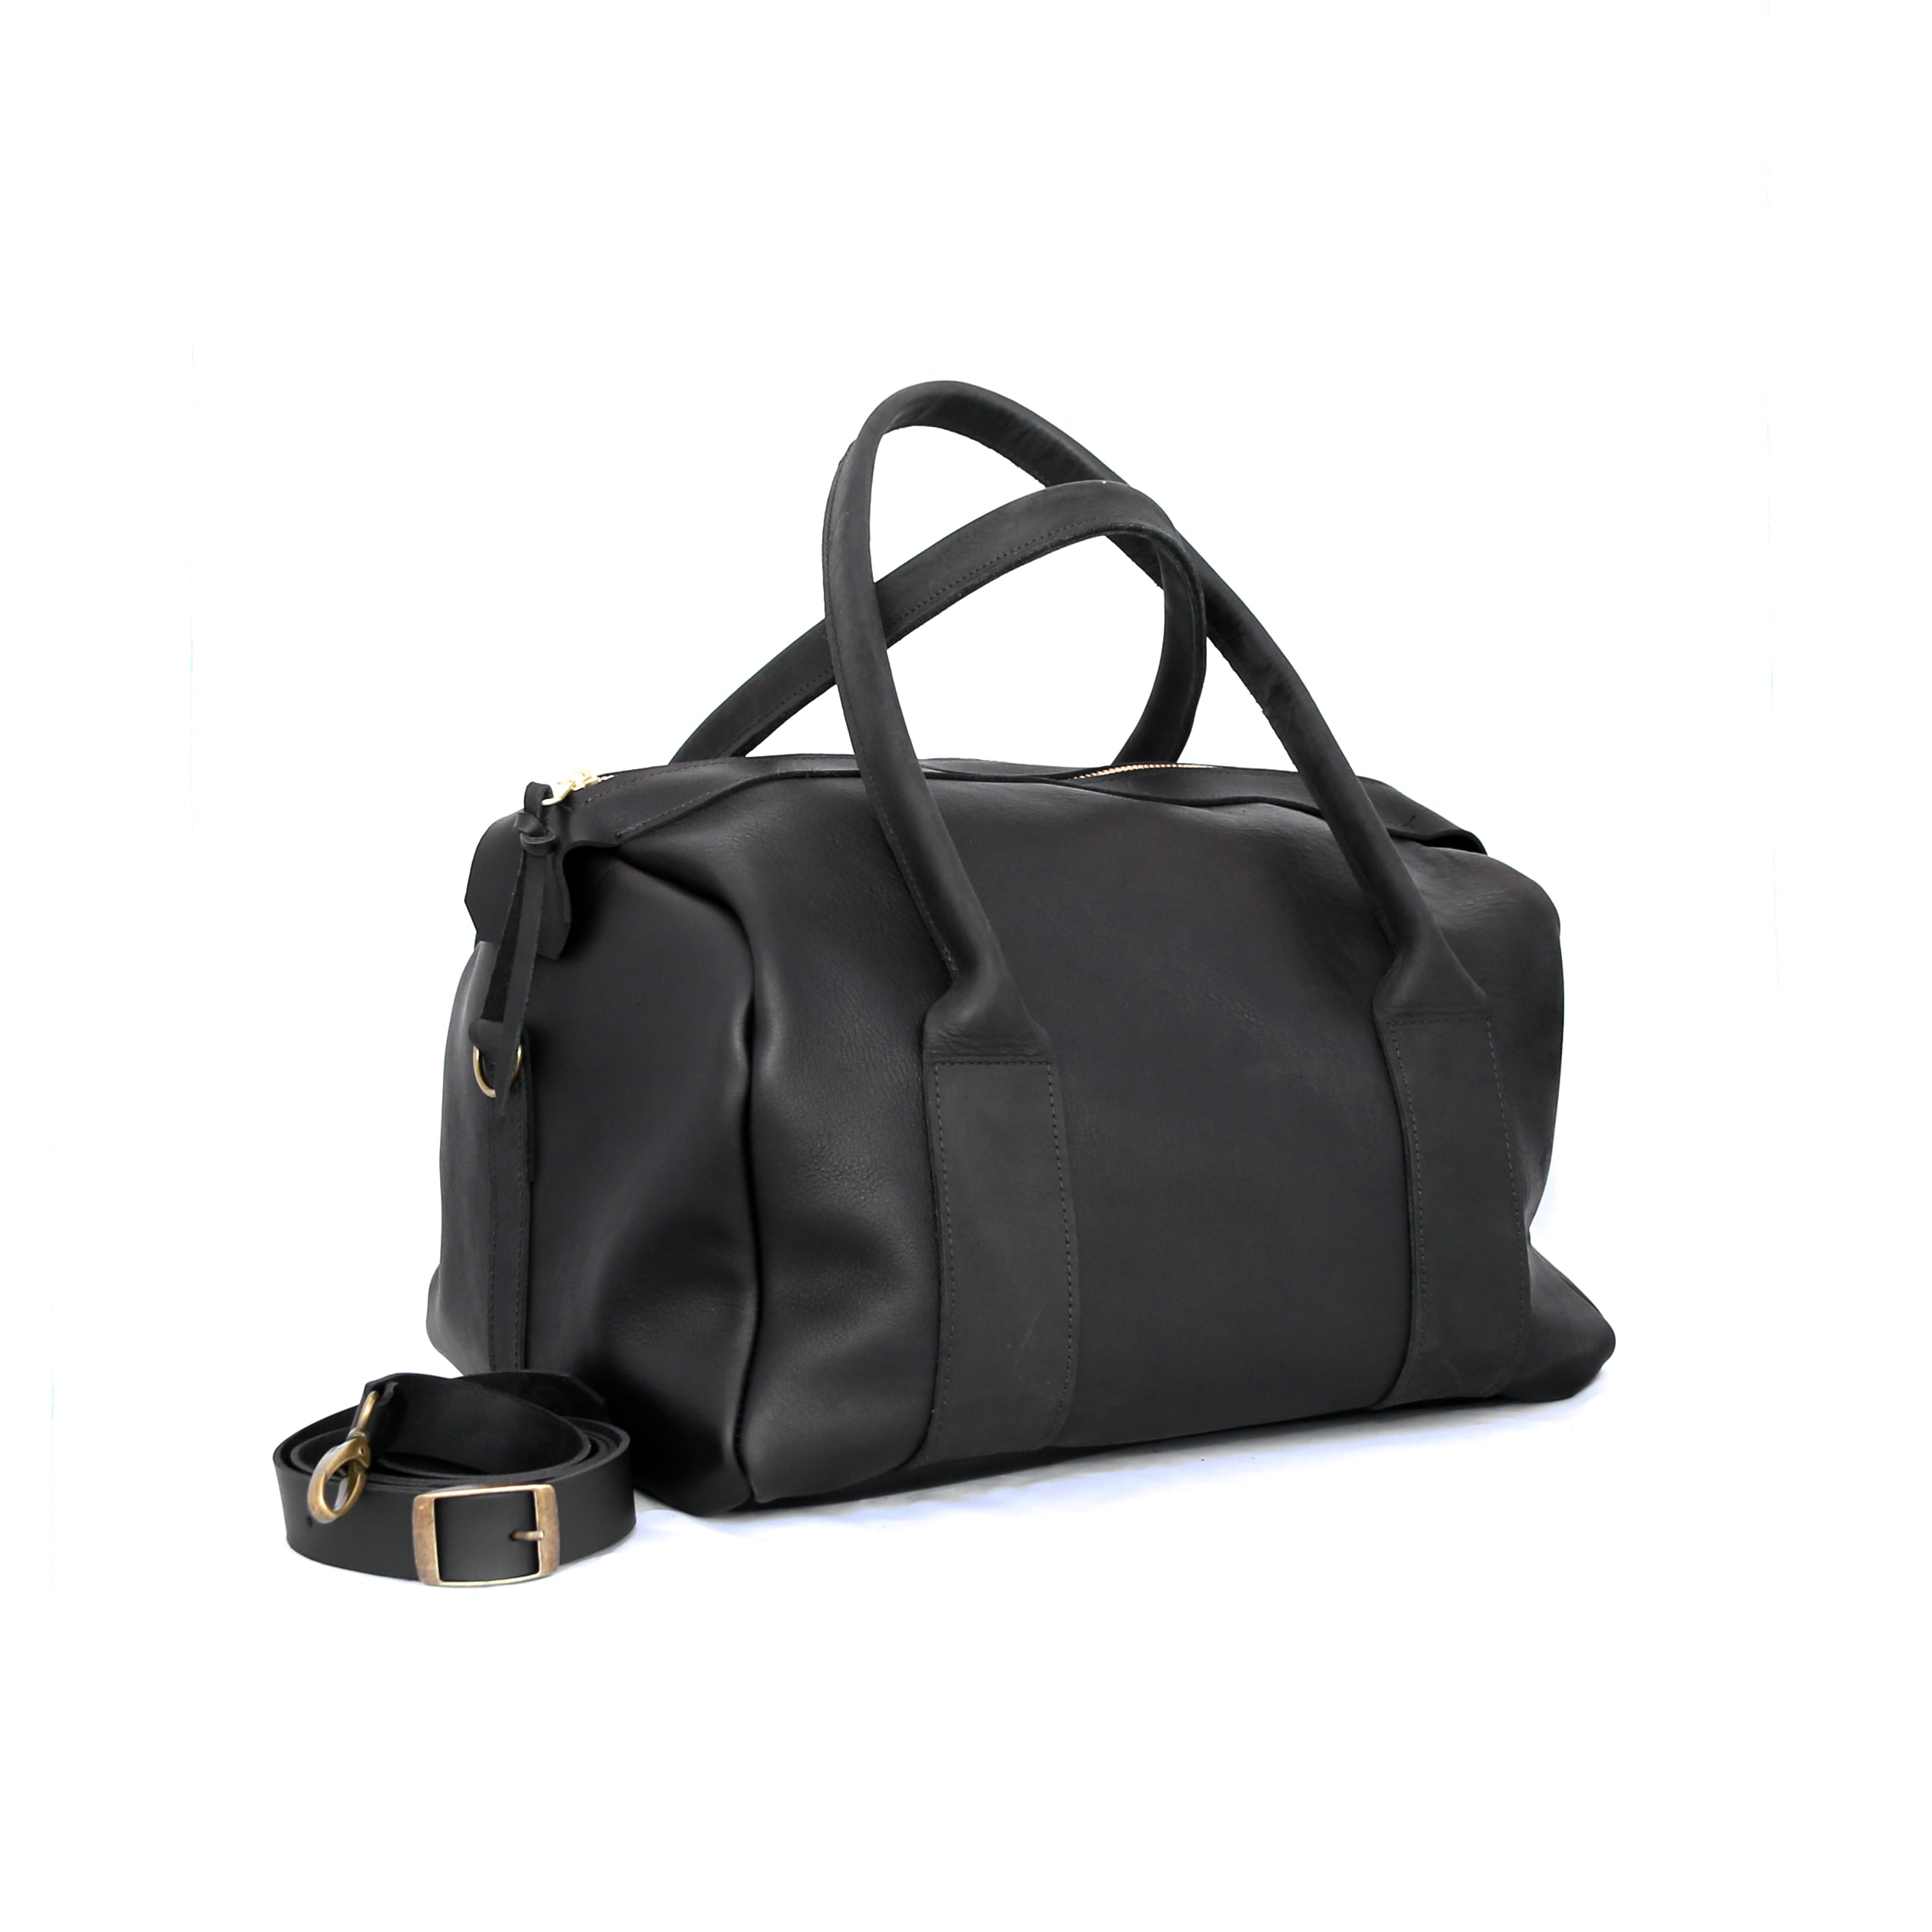 The Overnighter in Black Leather - handcrafted by Market Canvas Leather in Tofino, BC, Canada